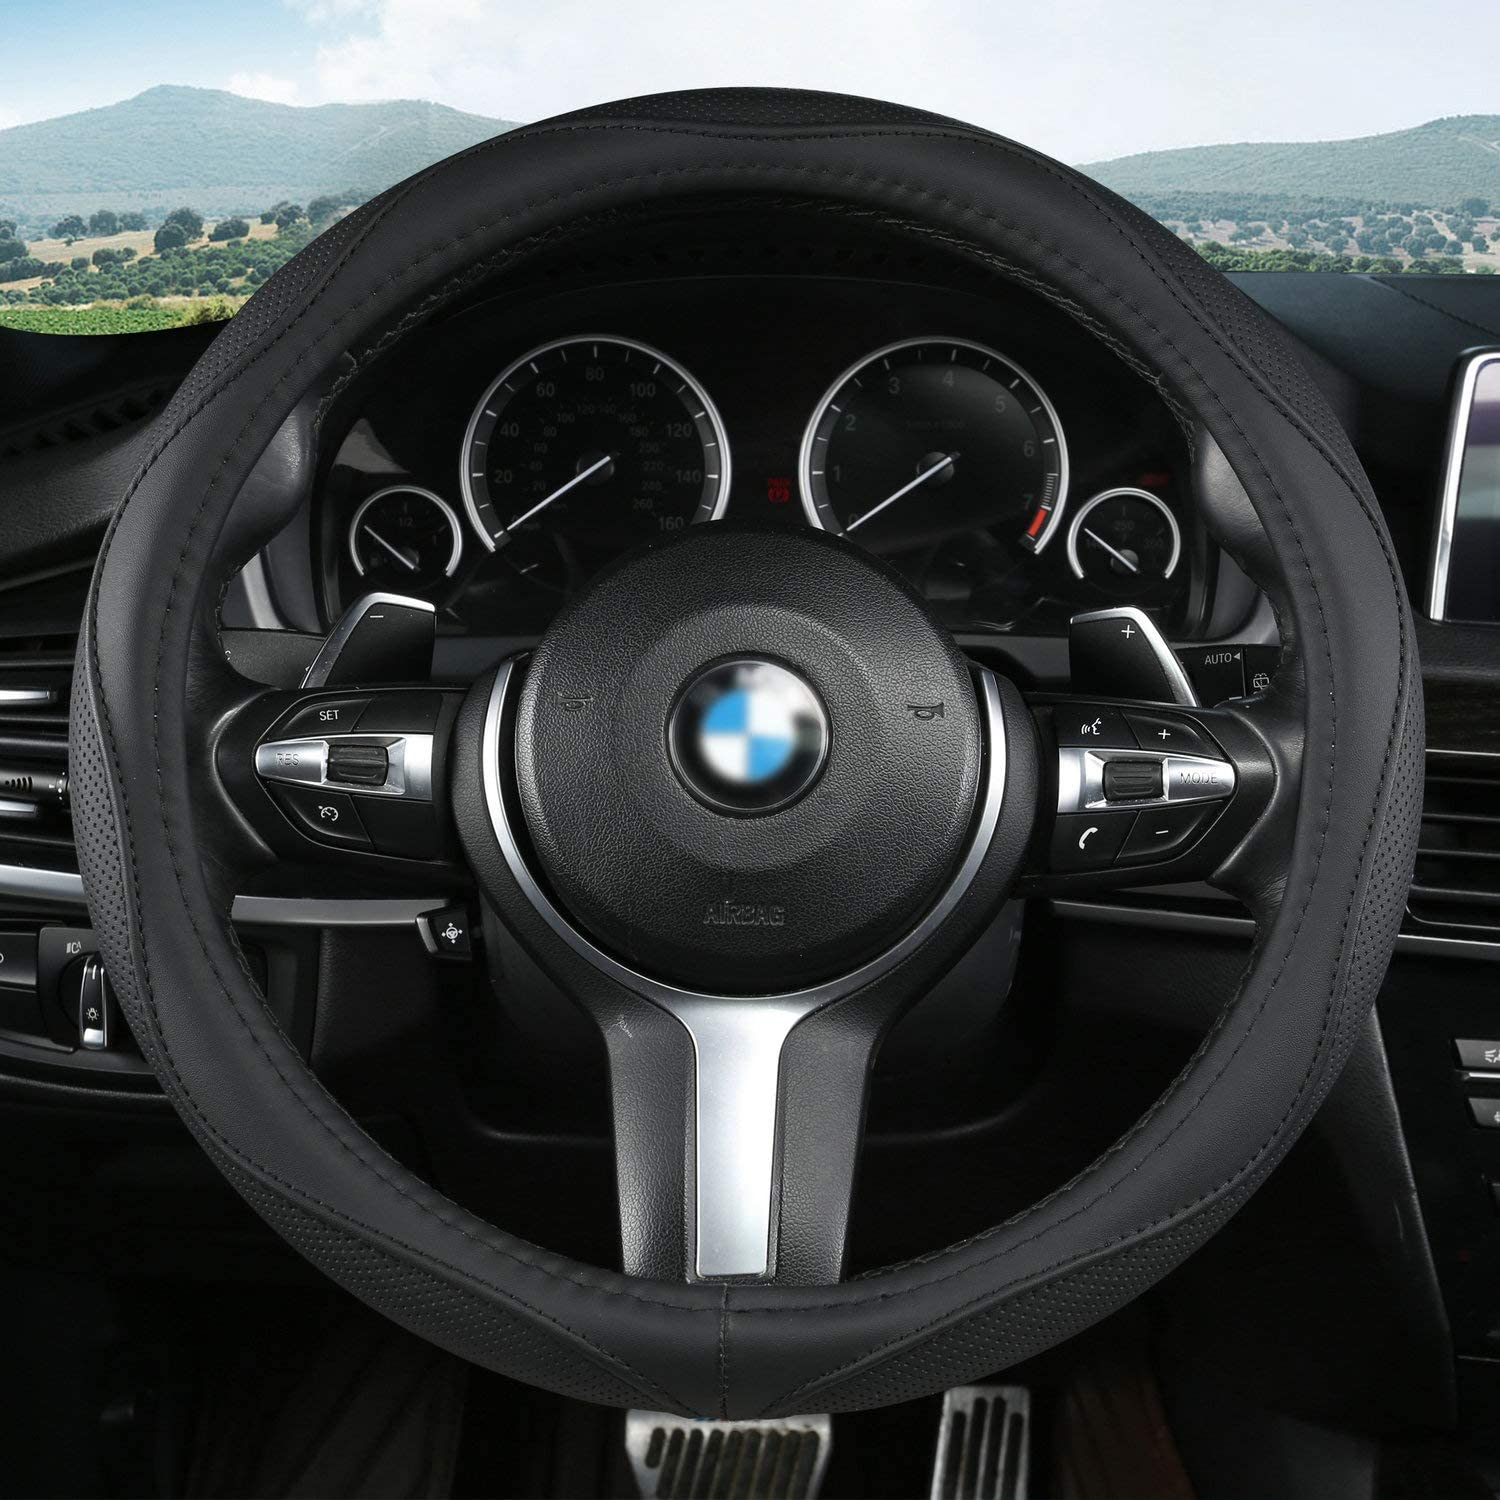 Odorless Black Universal Fit 15 Inch Car Wheel Protector- Breathable Aierxuan Microfiber Leather Steering Wheel Covers Anti Slip